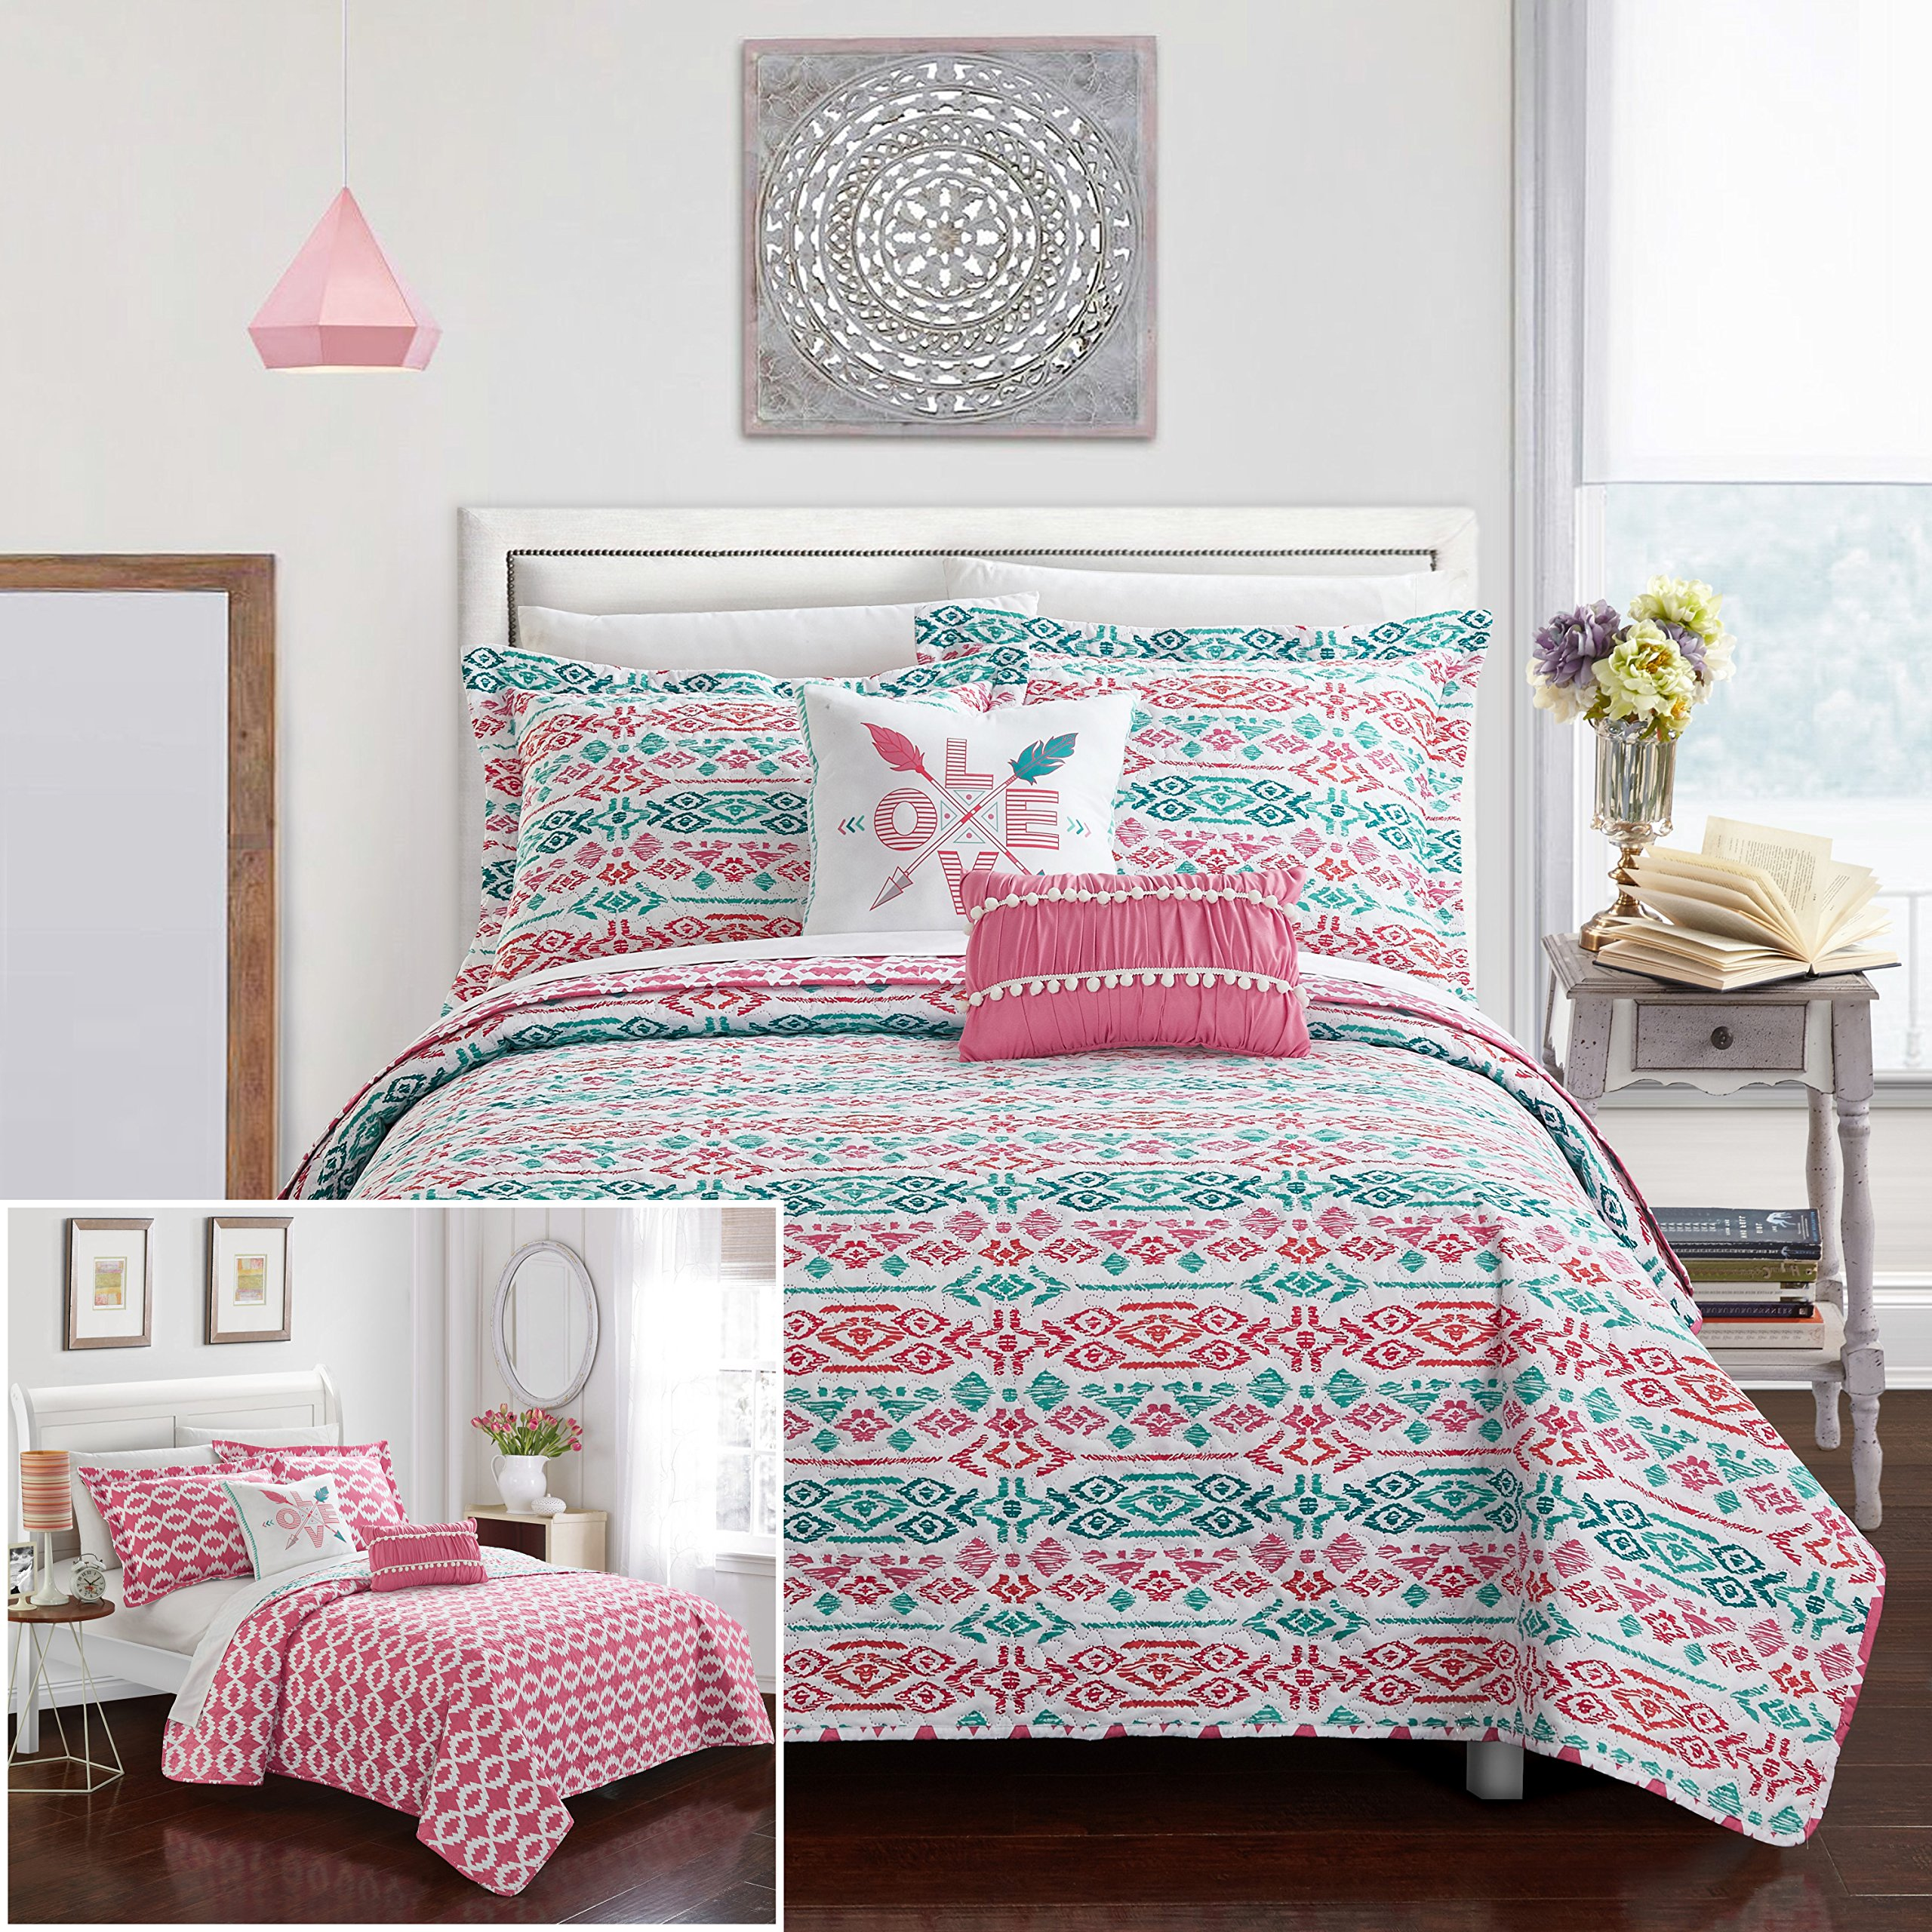 Chic Home 4 Piece Millie REVERSIBLE Ikat bohemian designer printed quilt and shams set, includes LOVE and pom pom pillow Twin Quilt Set Aqua by Chic Home (Image #1)